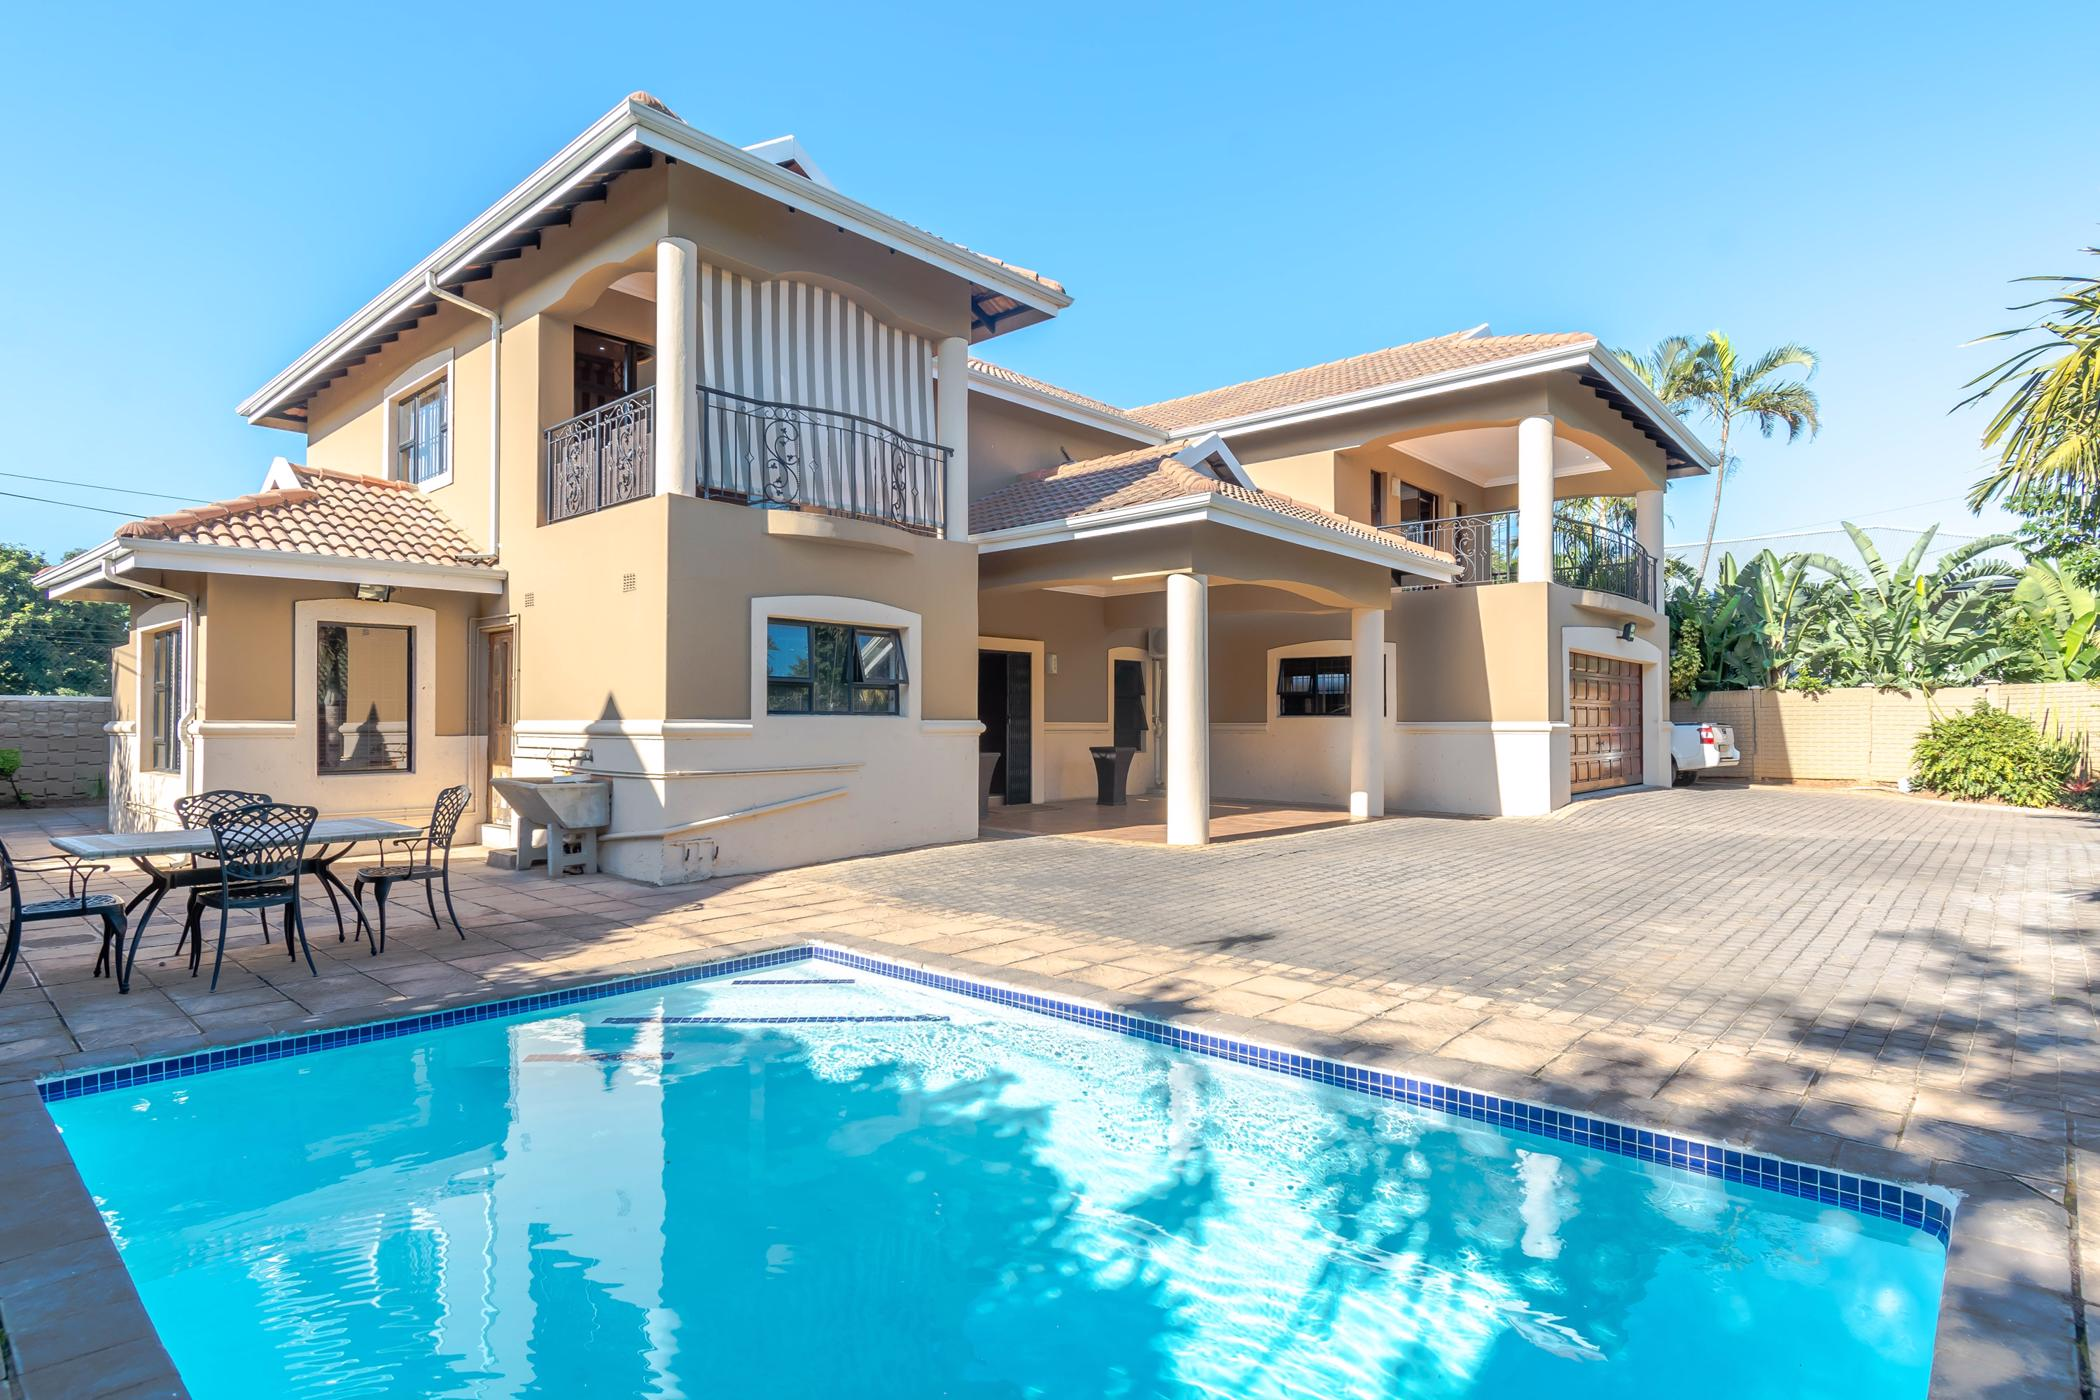 4 Bedroom House For Sale   Durban North   1ND1440437   Pam